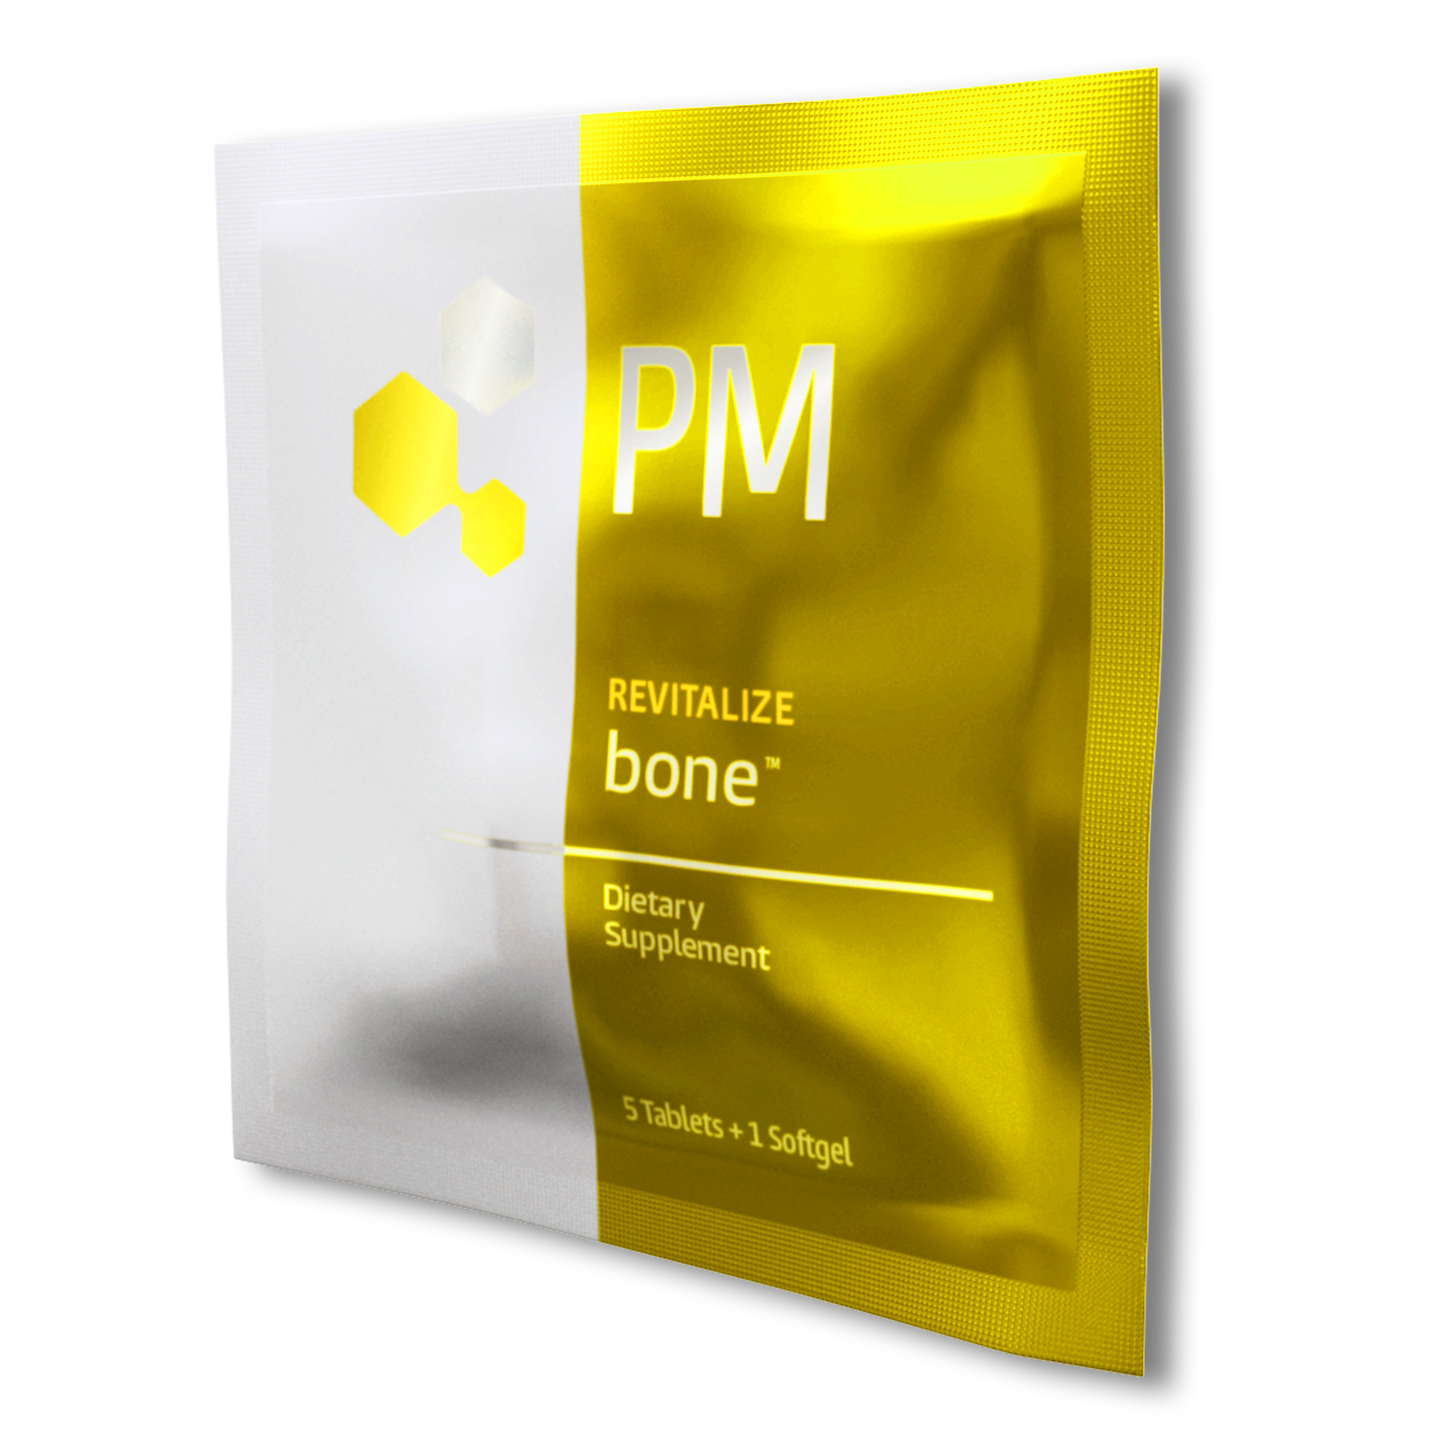 forte bone supplement pm packet